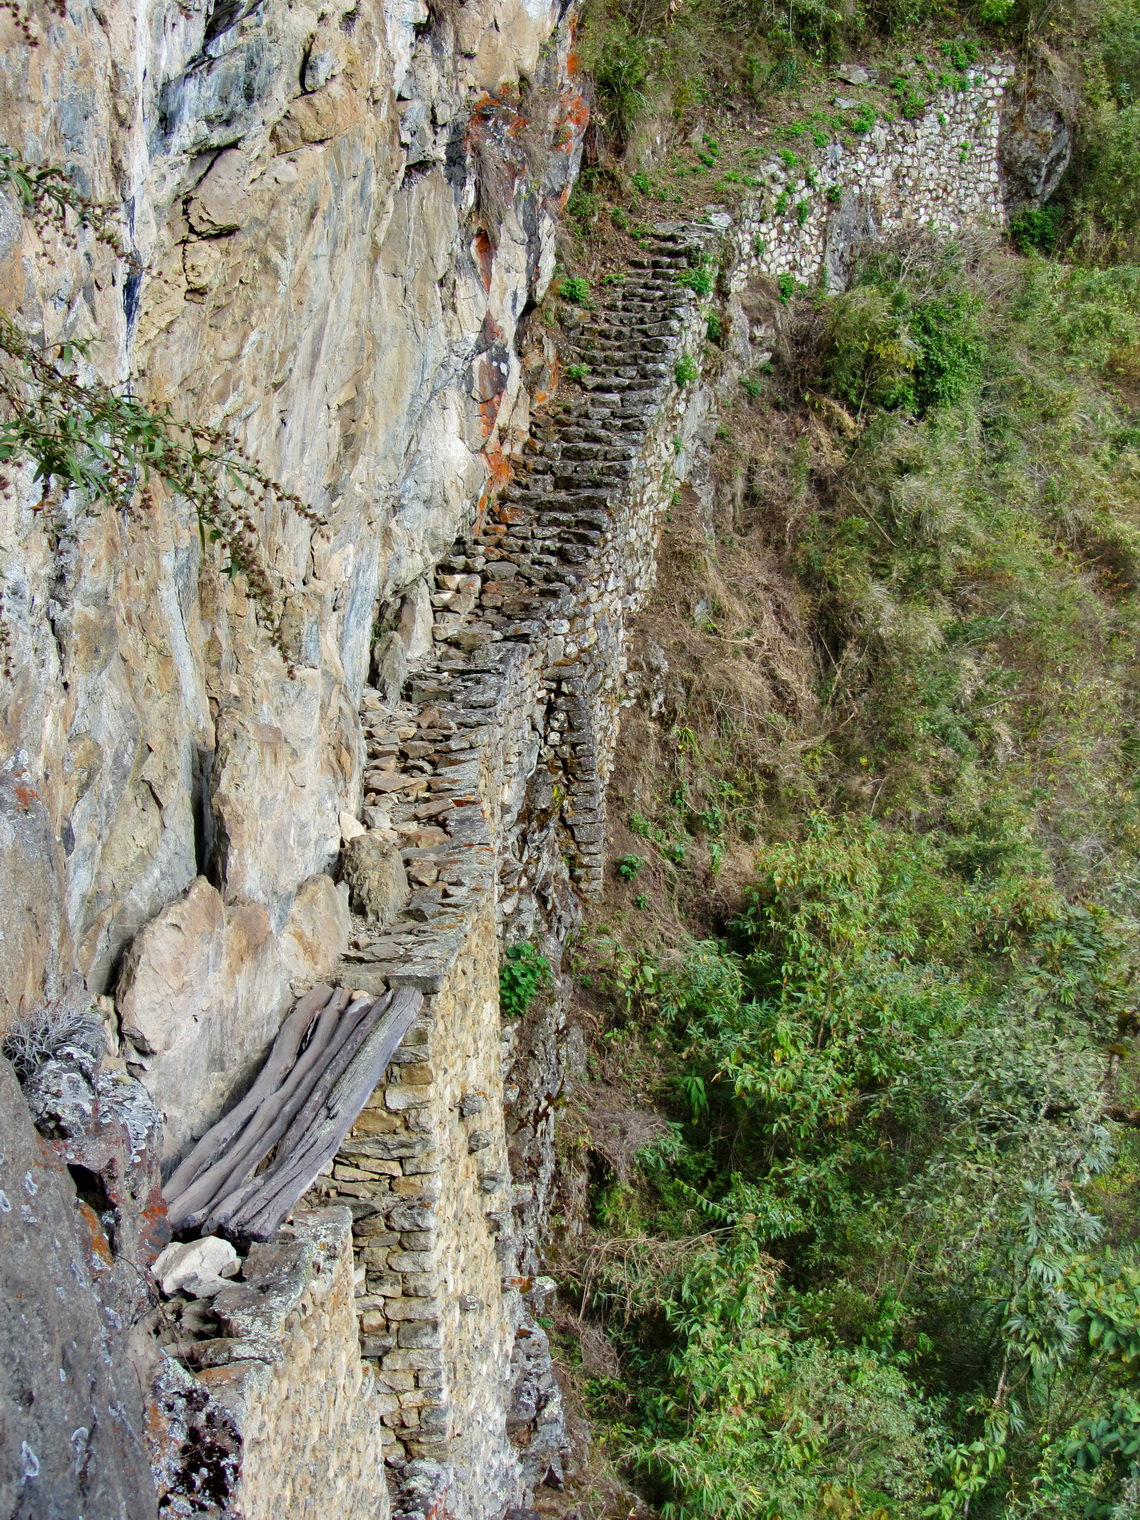 The Inca drawbridge